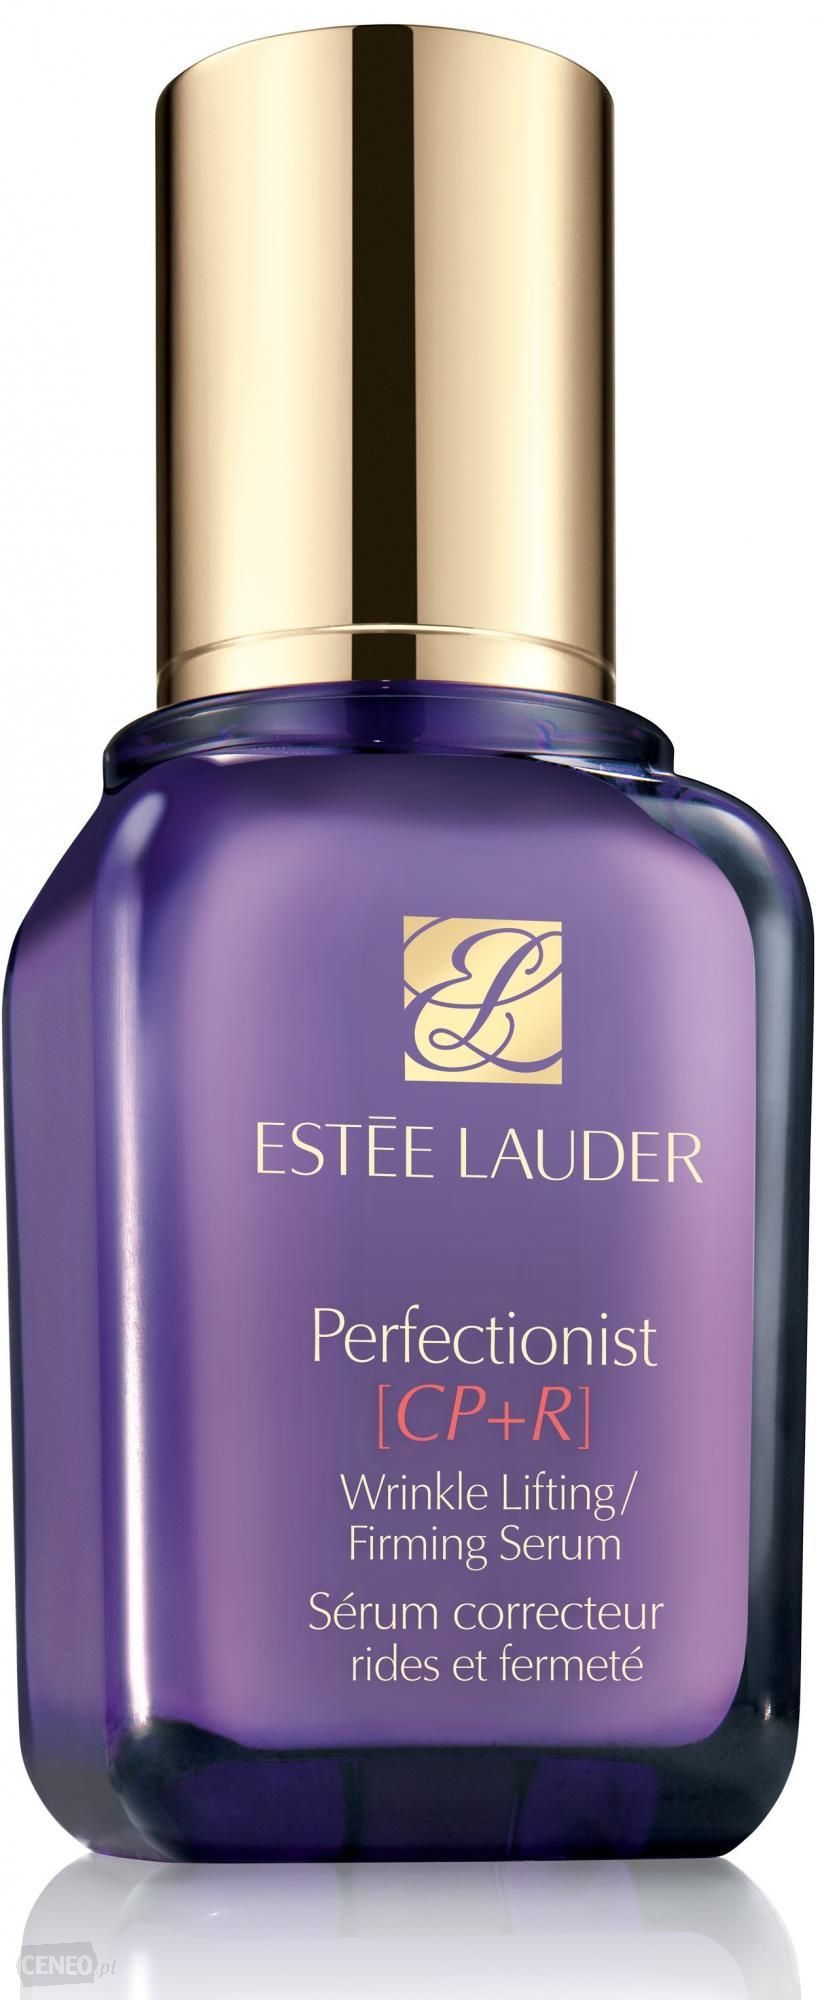 Estée Lauder Perfectionist CP+R Wrinkle Lifting Serum 50 ml